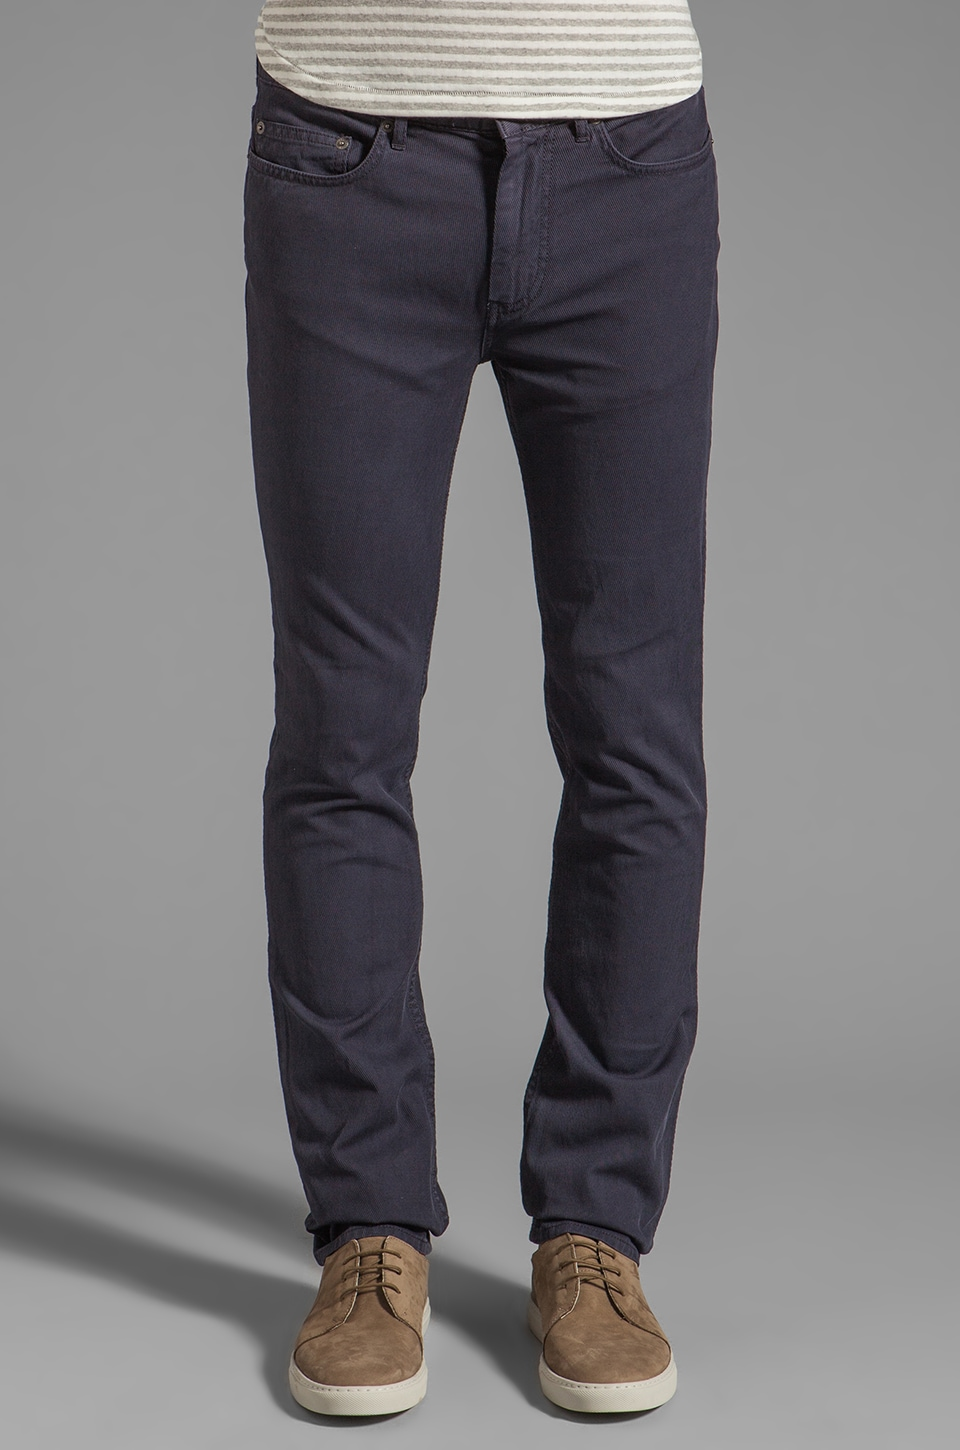 Marc by Marc Jacobs Hector Denim in Violet Indigo